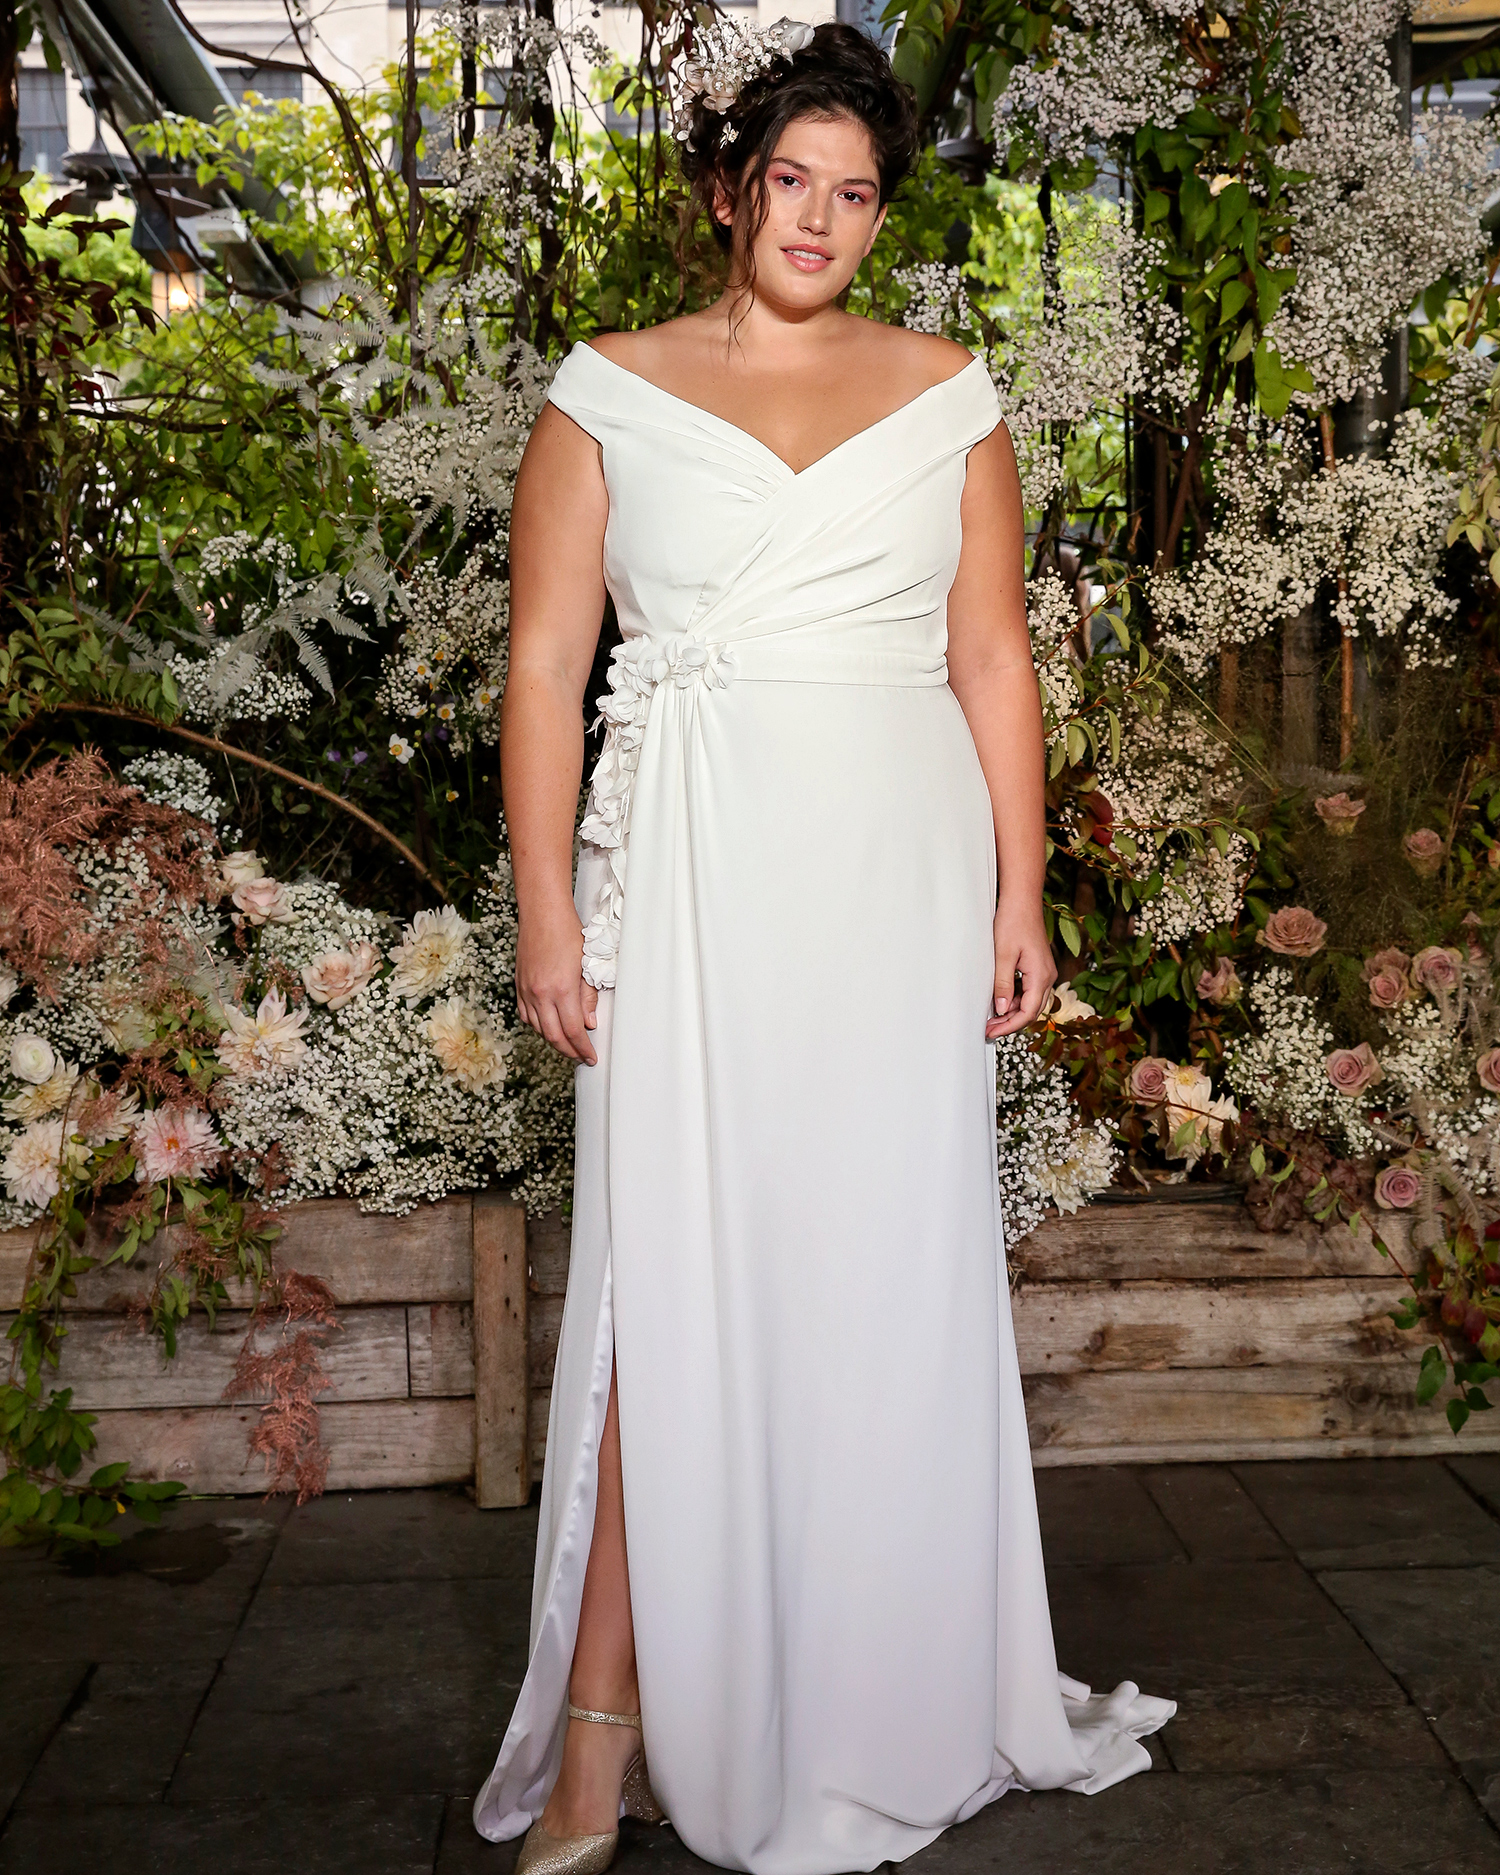 alexandra grecco wedding dress off-the-shoulder wrapped bodice